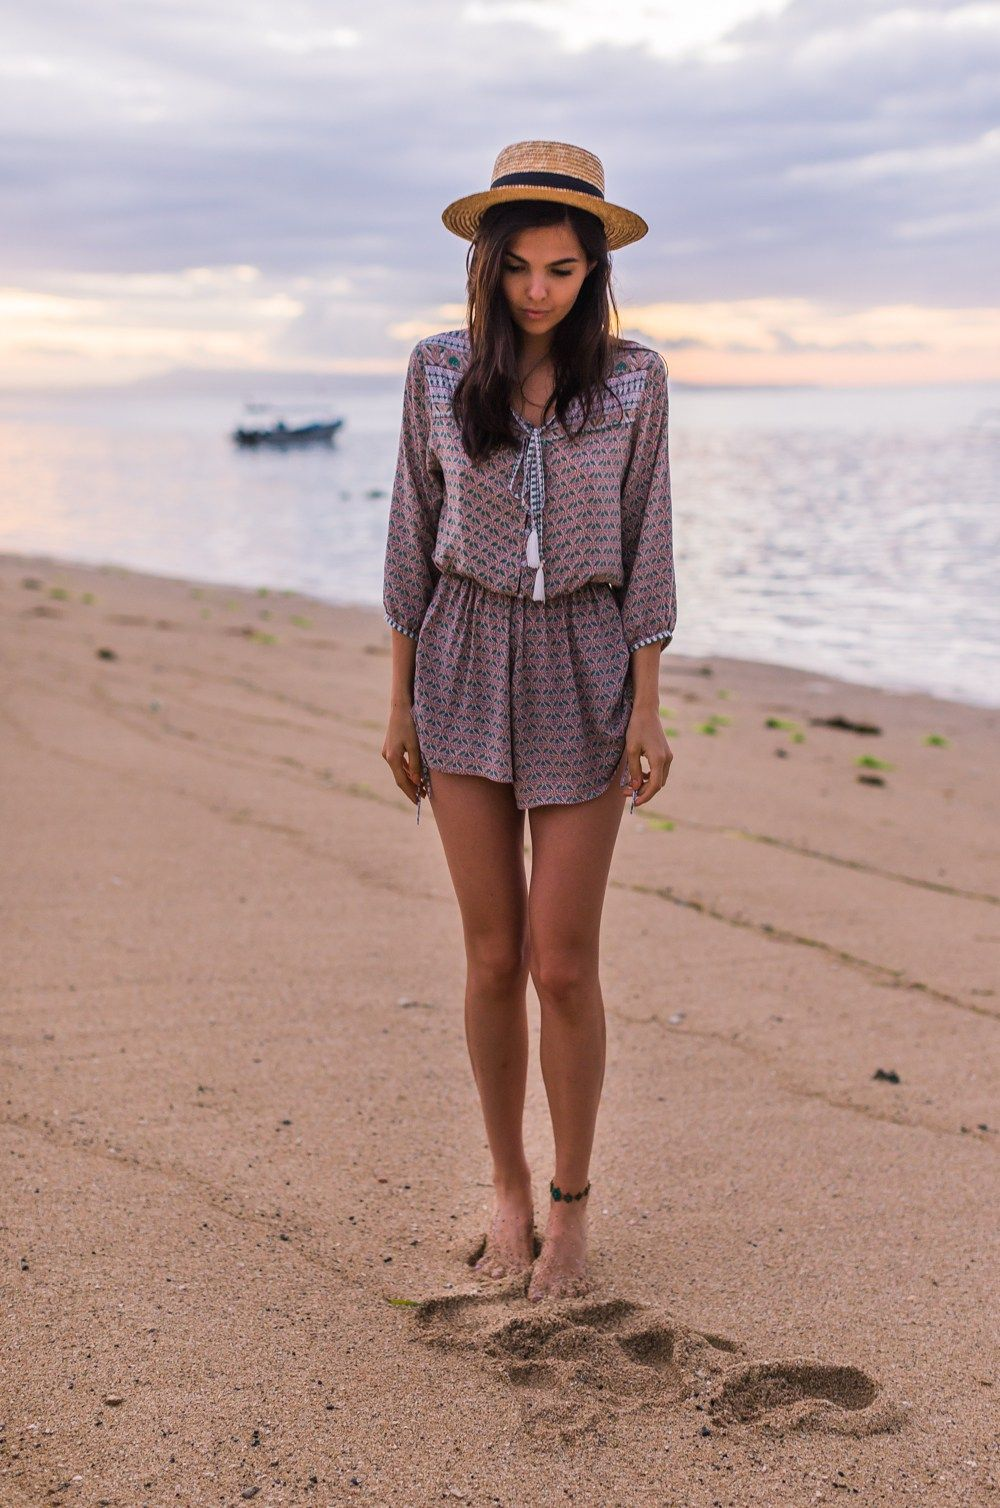 For a cute beach outfit idea, try wearing a loose and light patterned  playsuit with - Outfits For The Beach: It's Gotta Be Cute - Beach Outfit Ideas